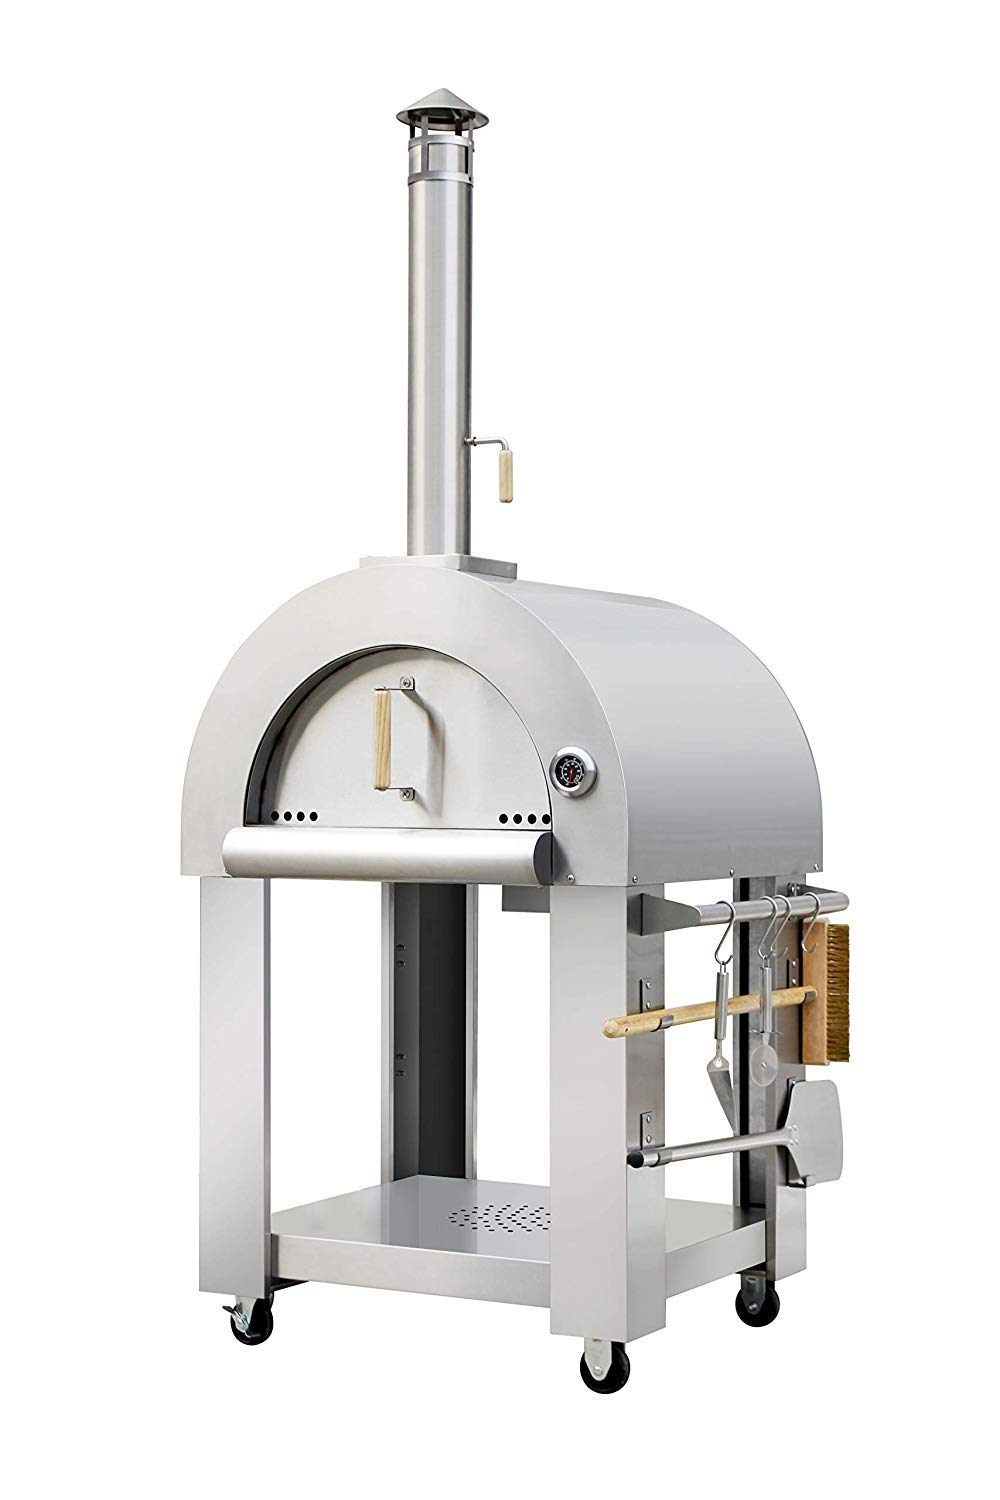 Thor Kitchen Pizza Oven Outdoor, Stainless Steel Wood Fire Pizza Oven Grill for Outdoor or Indoor - with Wire Brush/Broom, Large Pizza Peel (Large Spatula), Pizza Turner Spatula and Pizza Cutter